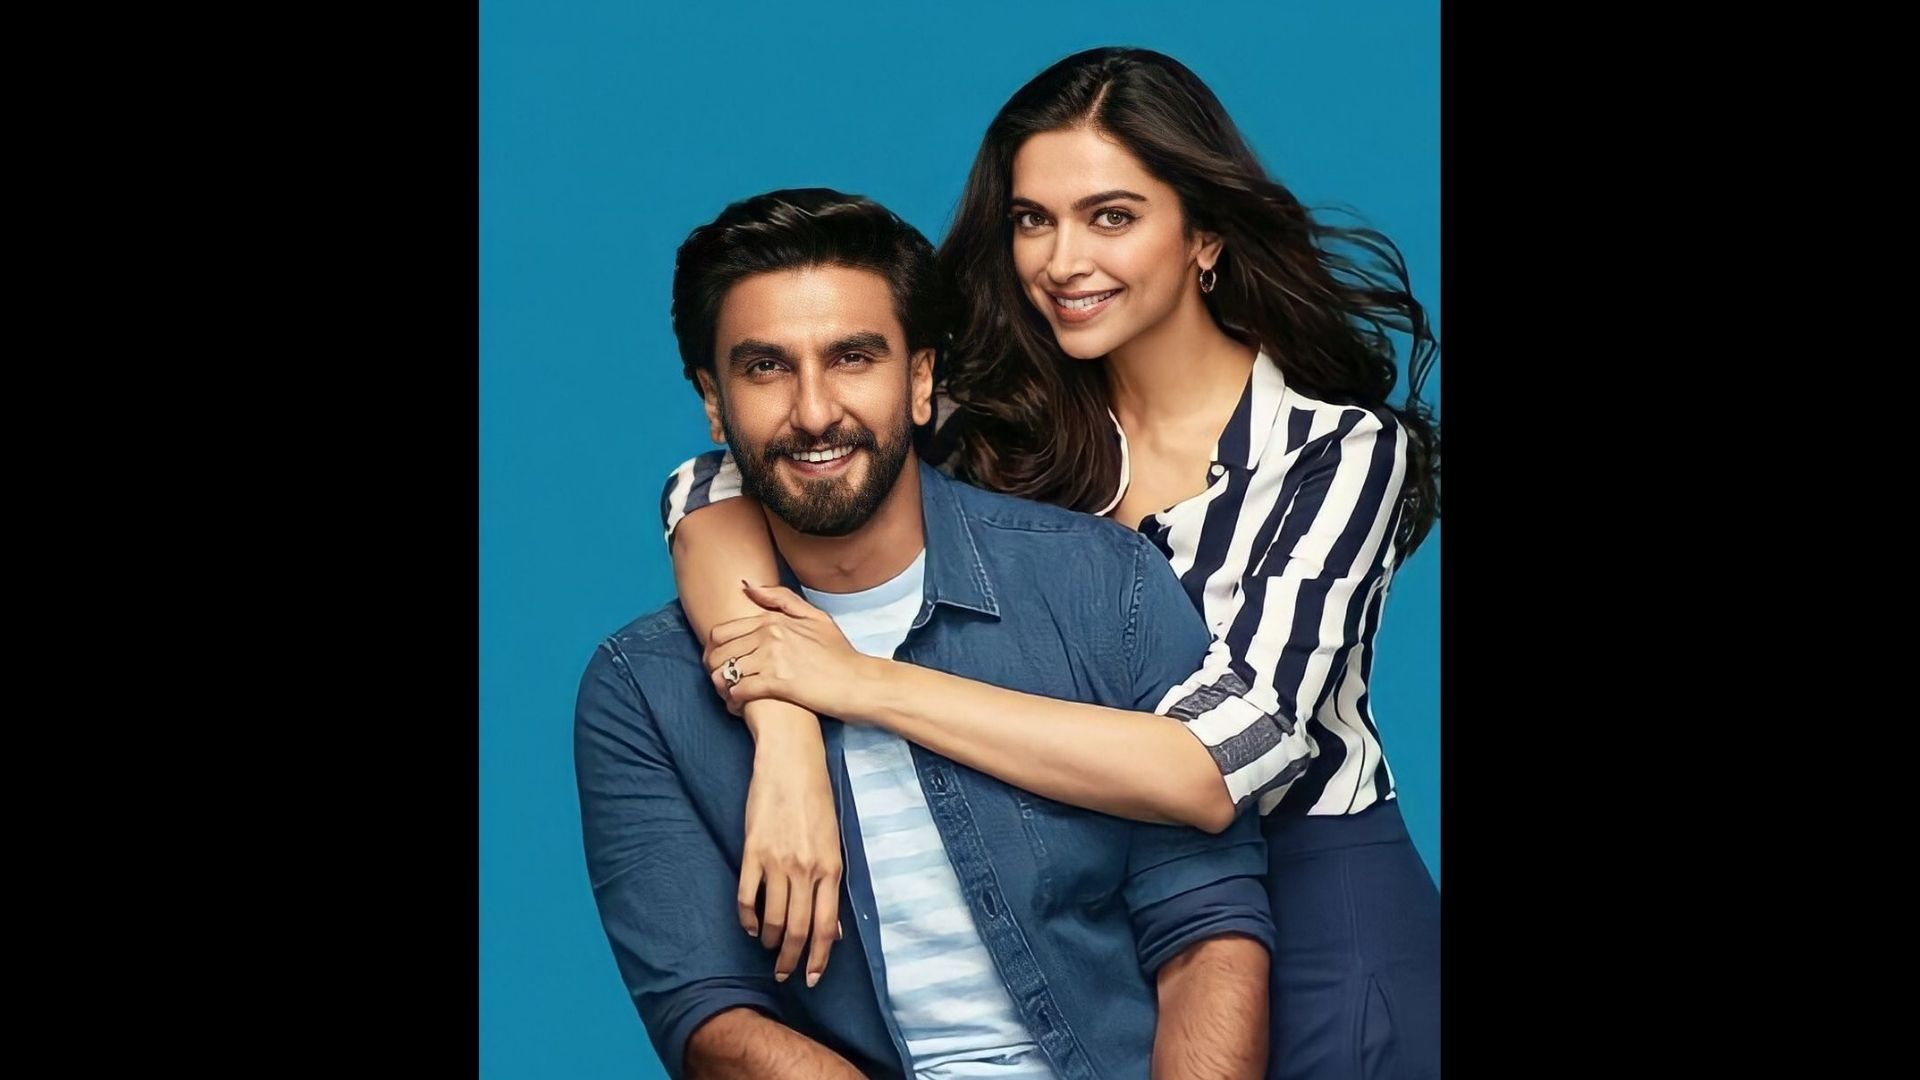 Deepika Padukone And Ranveer Singh To Bid For A New IPL Team? Latest Reports Hint So